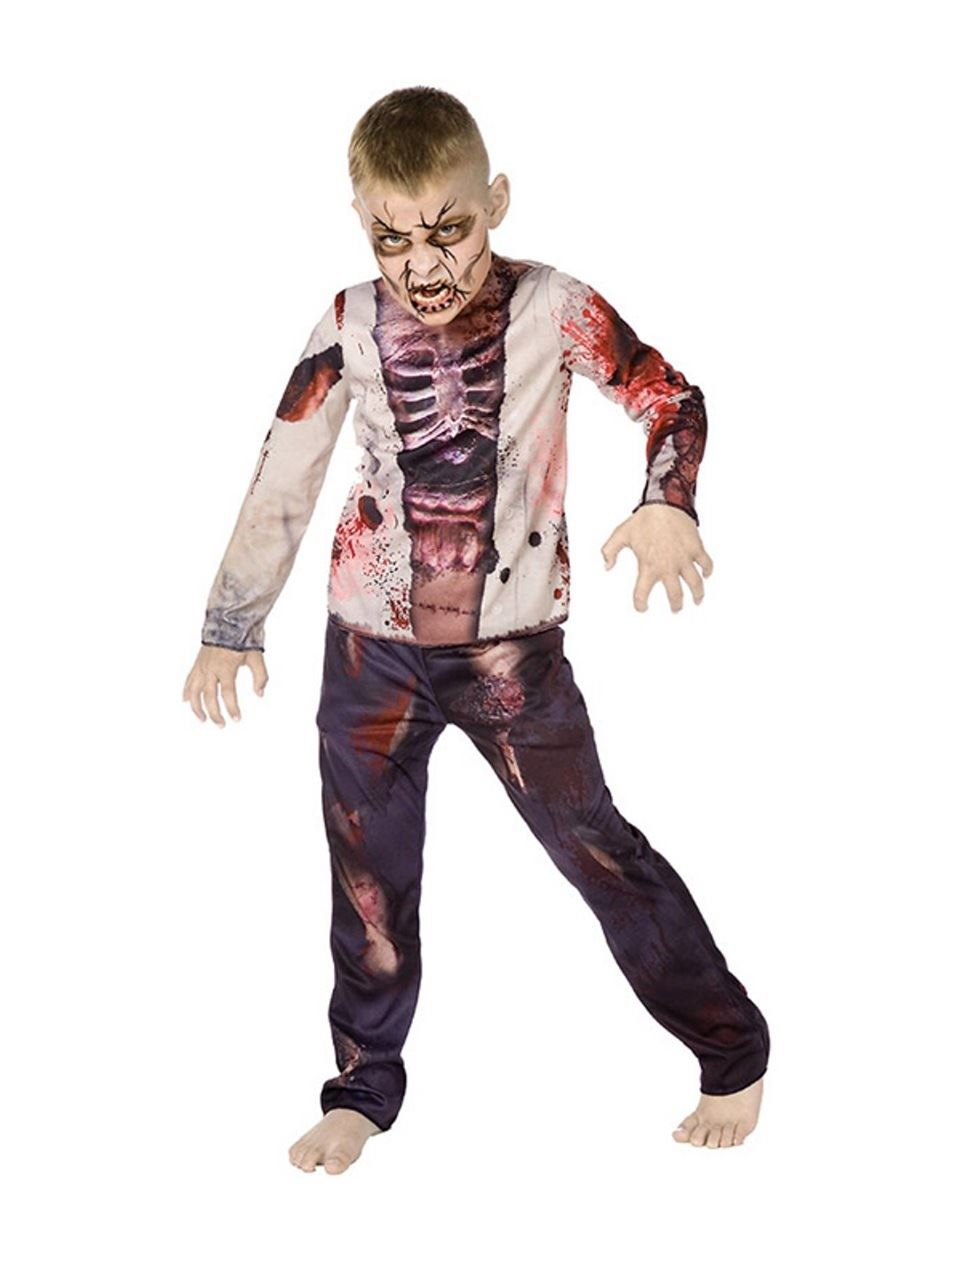 Halloween Costumes For Kids Scary.Details About Childrens Zombie Boy Halloween Costume Kids Scary Fancy Dress